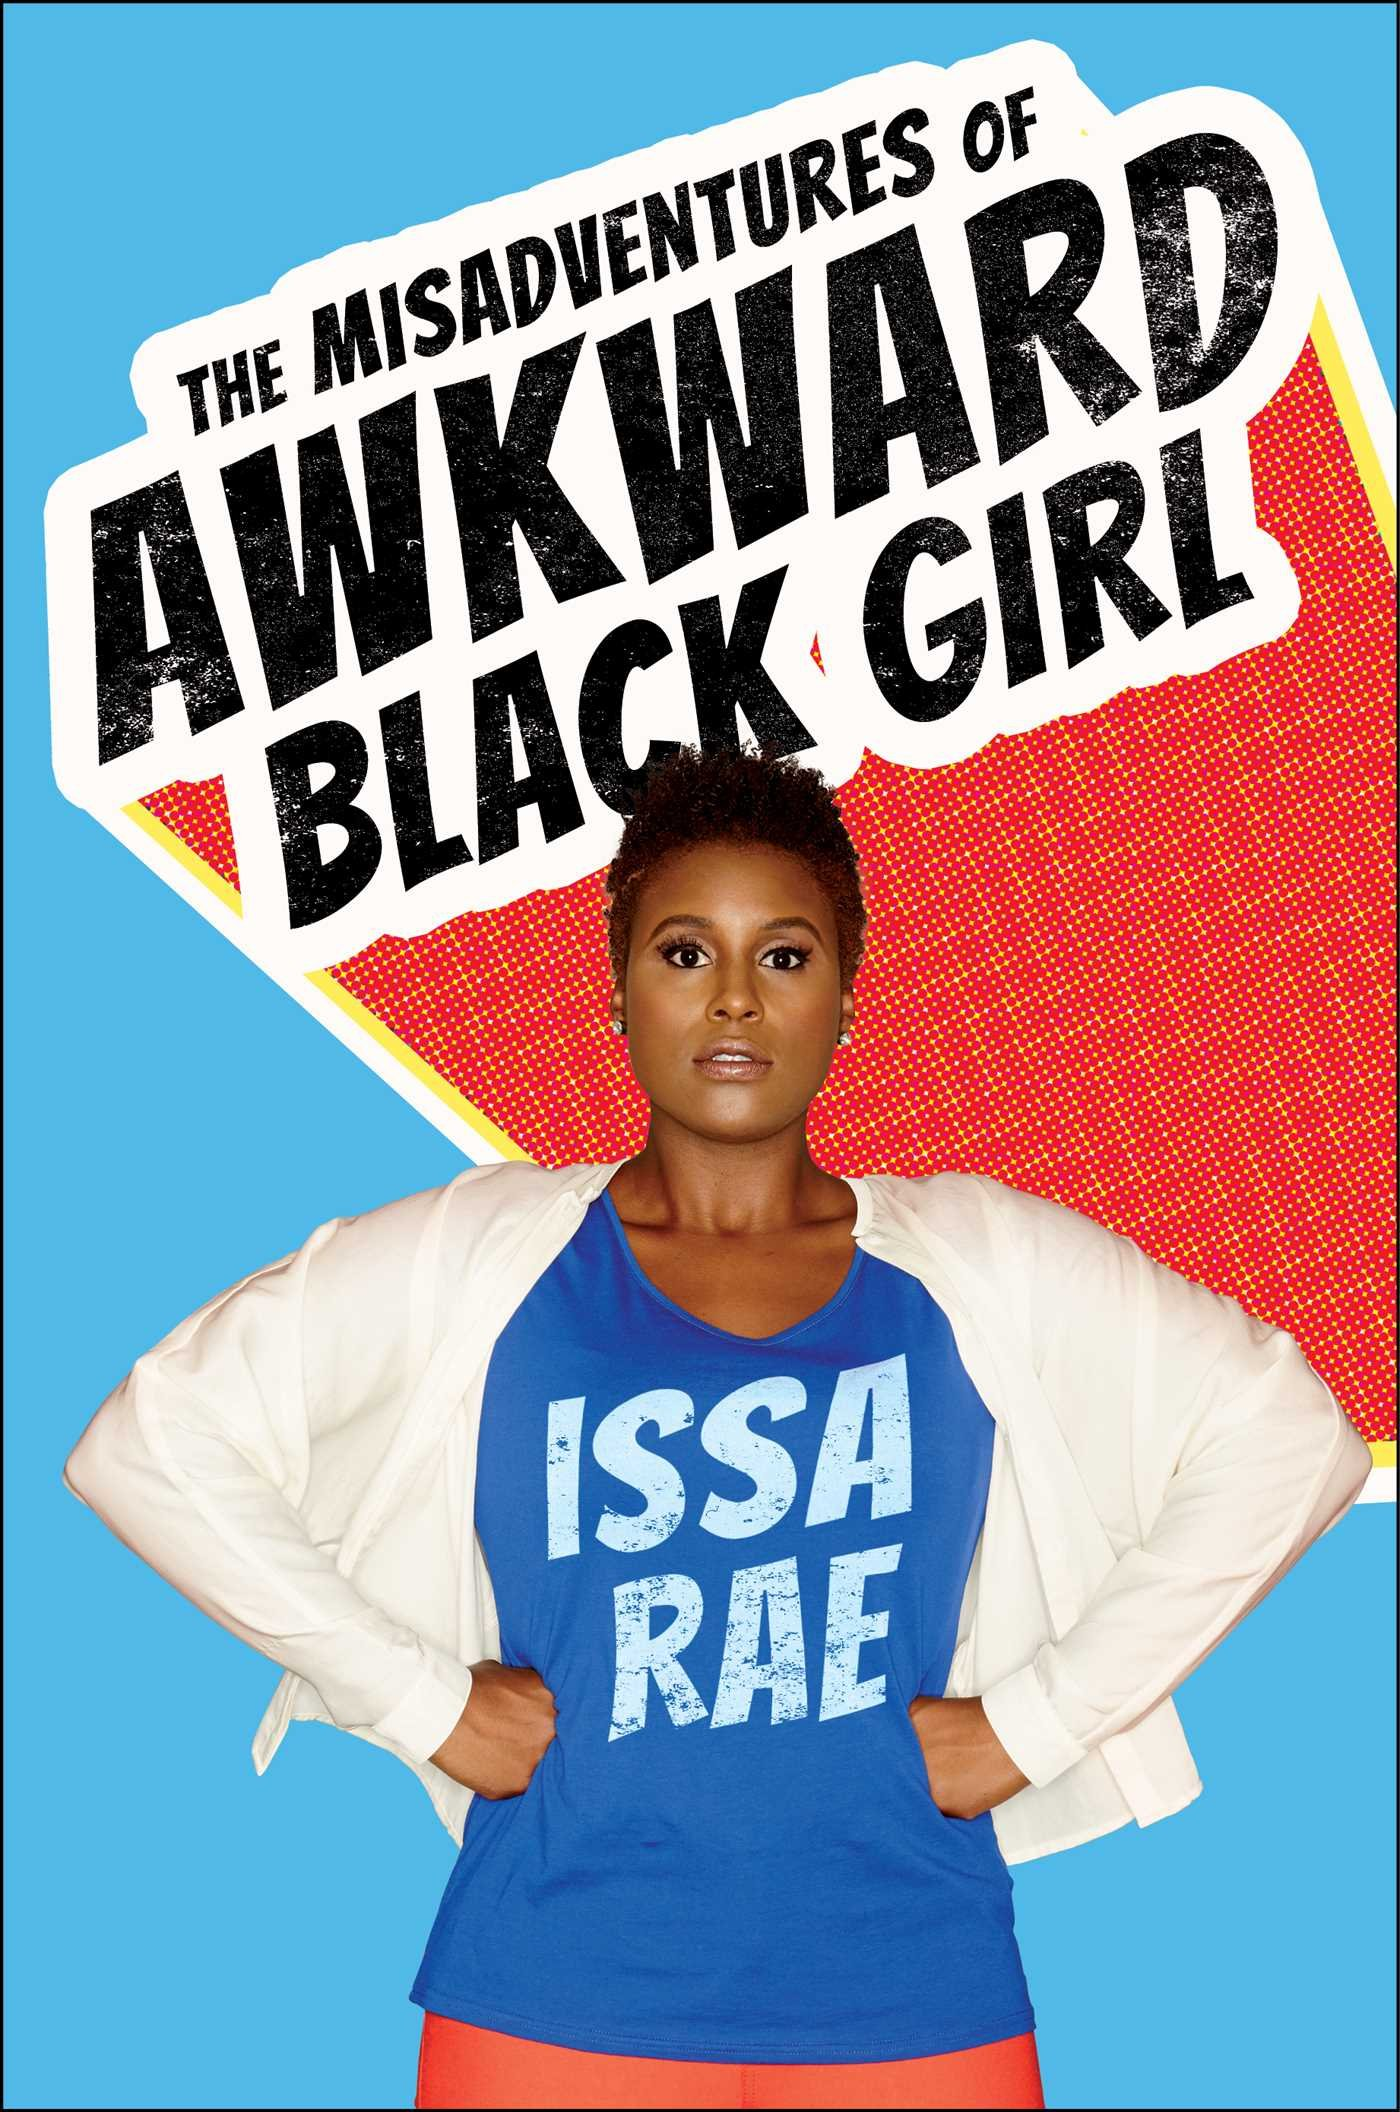 The Misadventures of The Awkward Black Girl